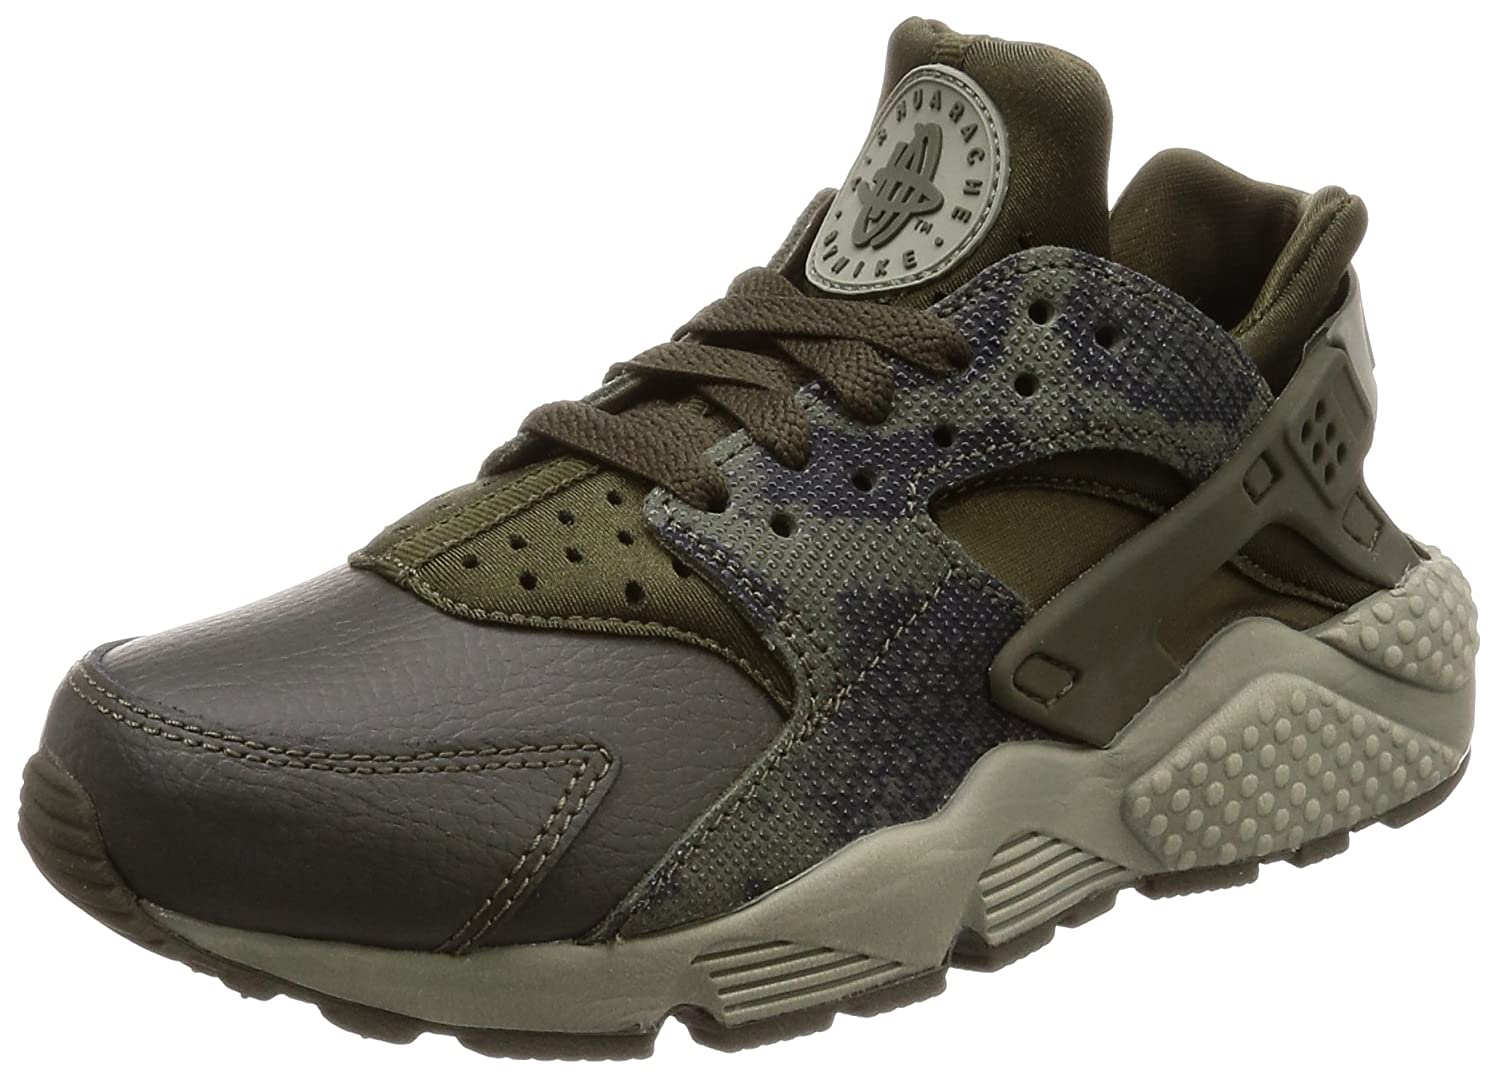 NIKE Women's Huarache Run SE Running Shoe B077SJ22NN 5.5 M US|Khaki